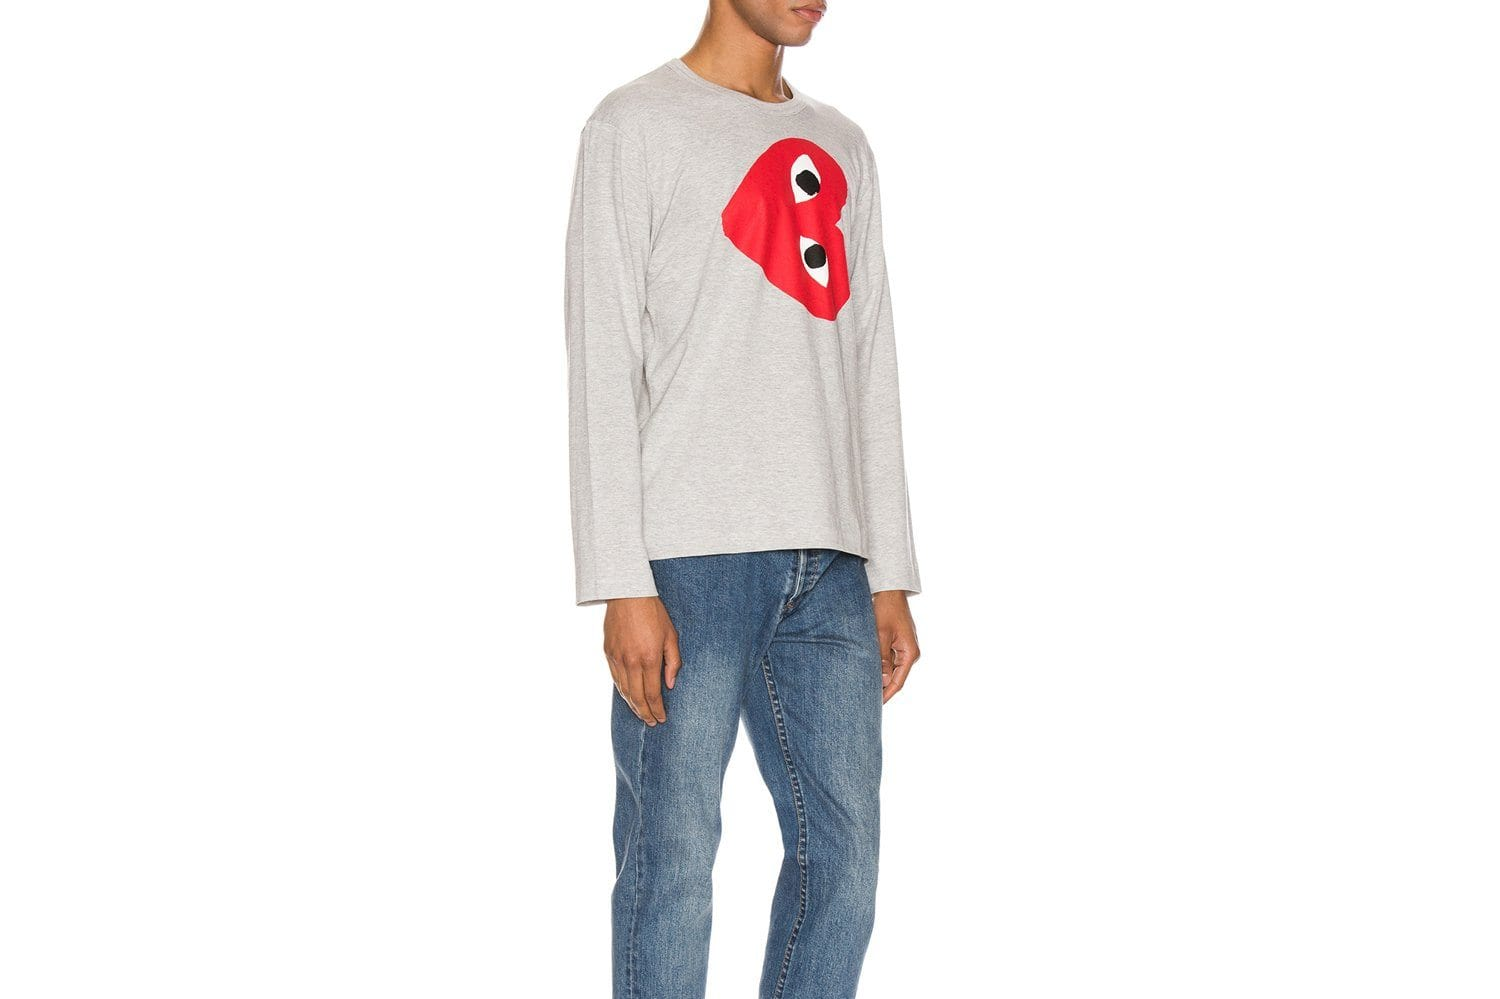 MENS LONG SLEEVE BIG HEART SIDE WAYS-AZT268 MENS SOFTGOODS COMME DES GARCONS